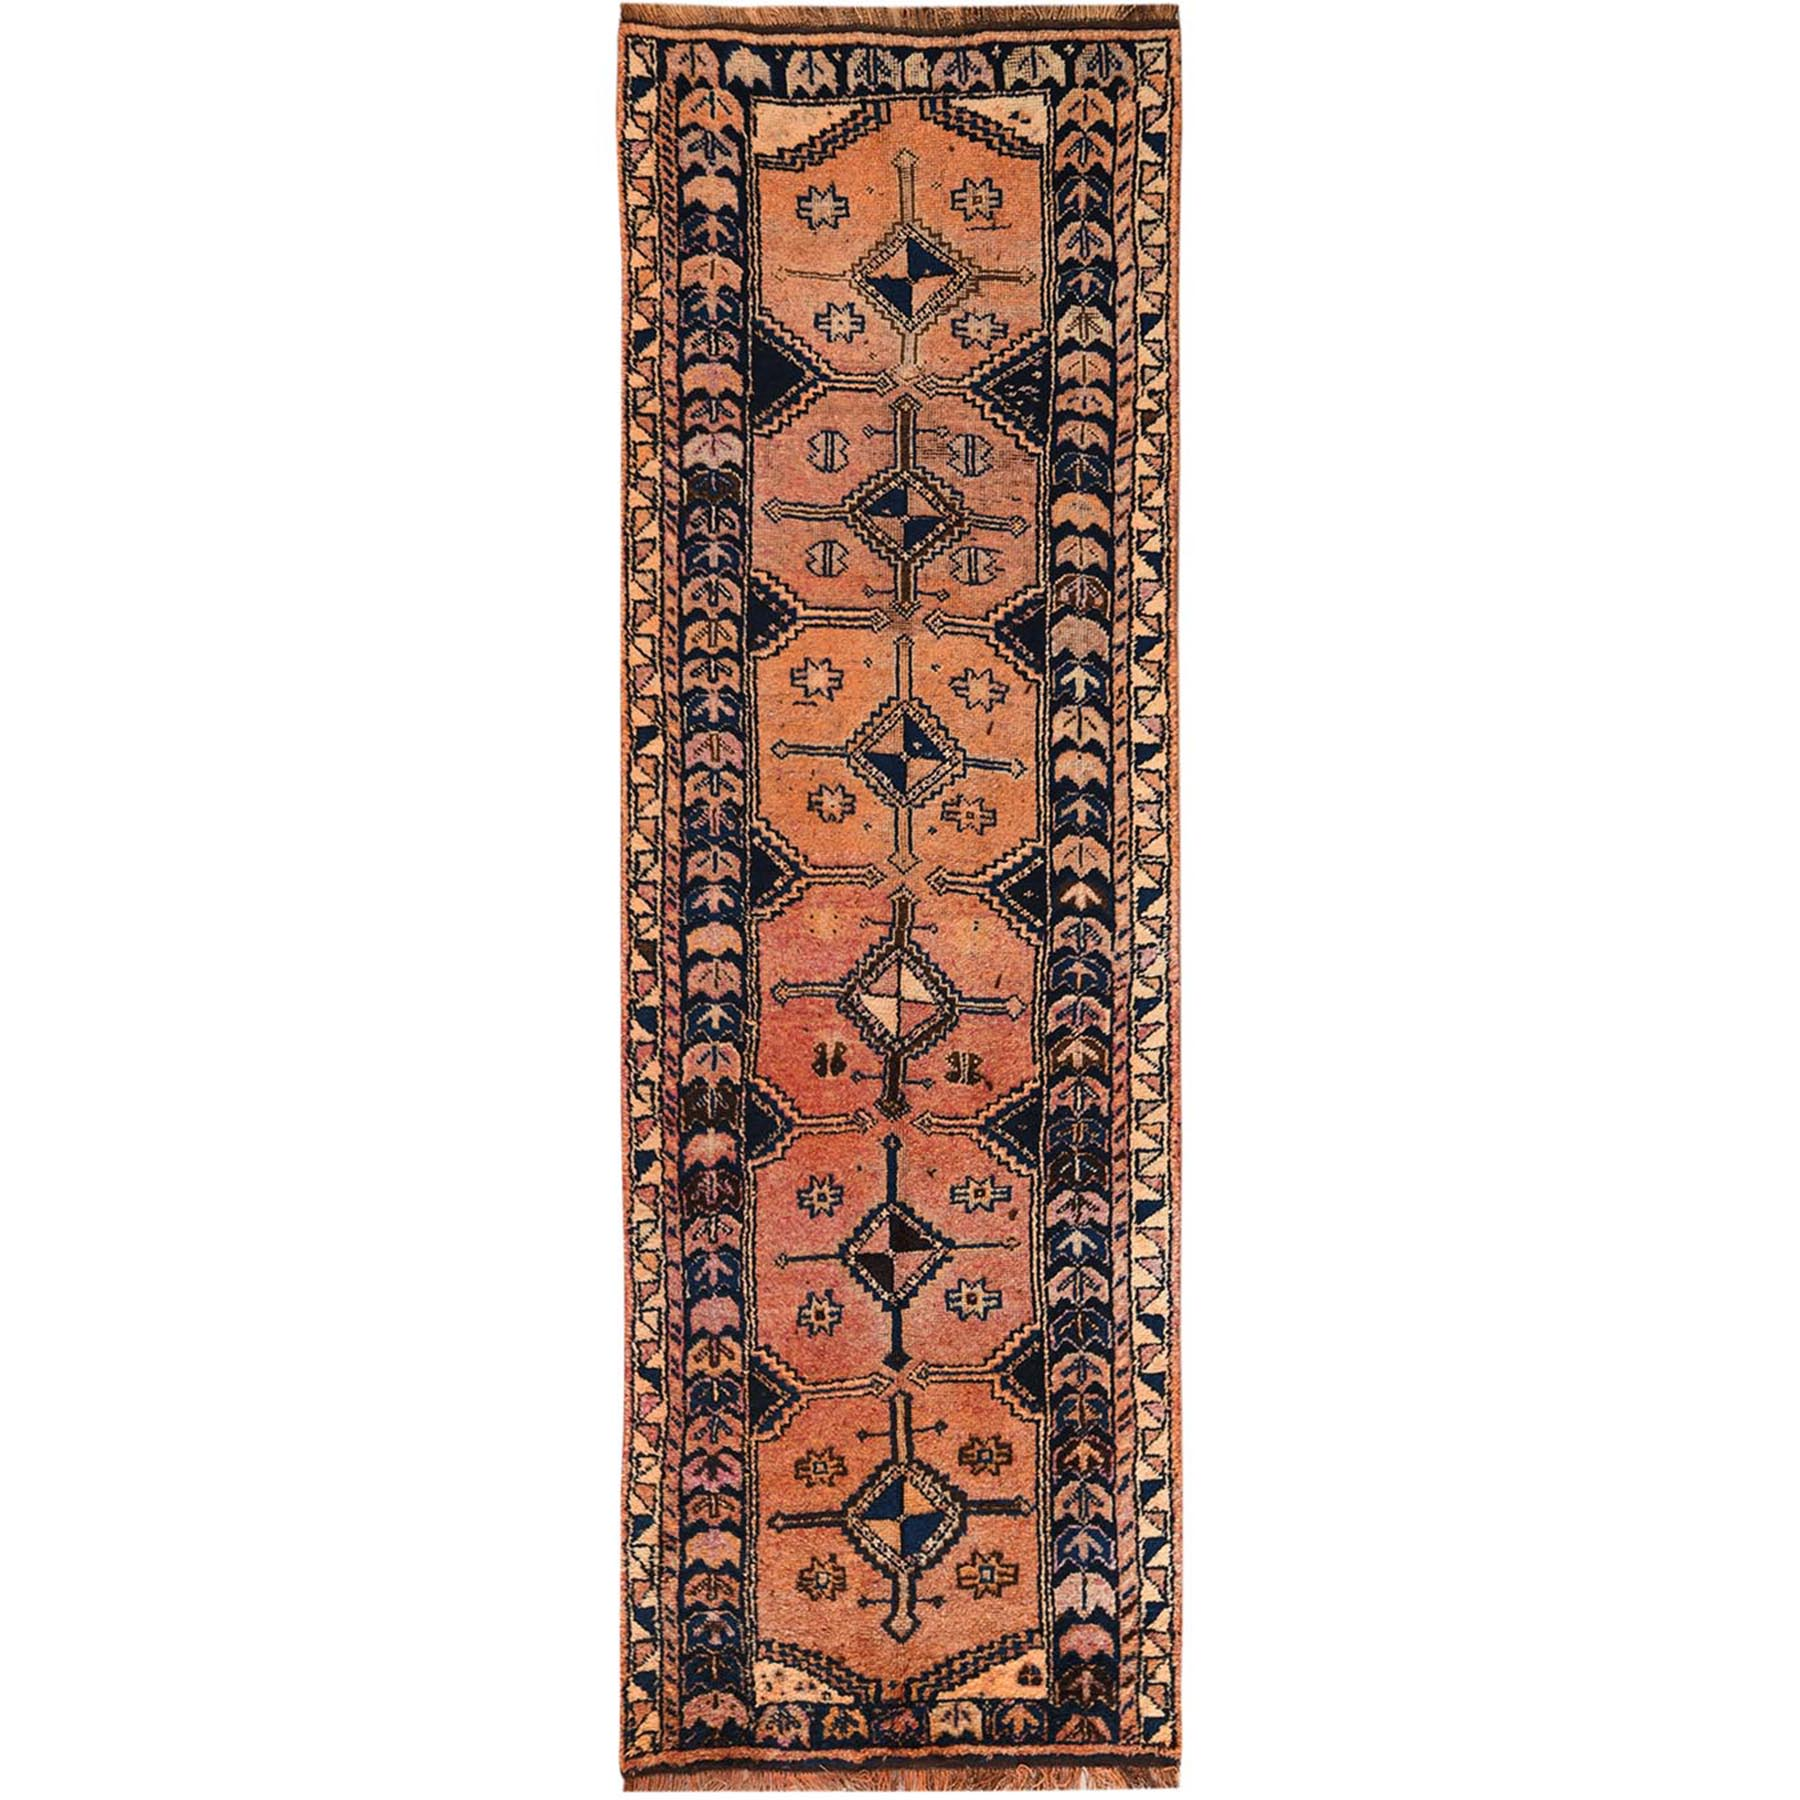 Fetneh Collection And Vintage Overdyed Collection Hand Knotted Orange Rug No: 1115542